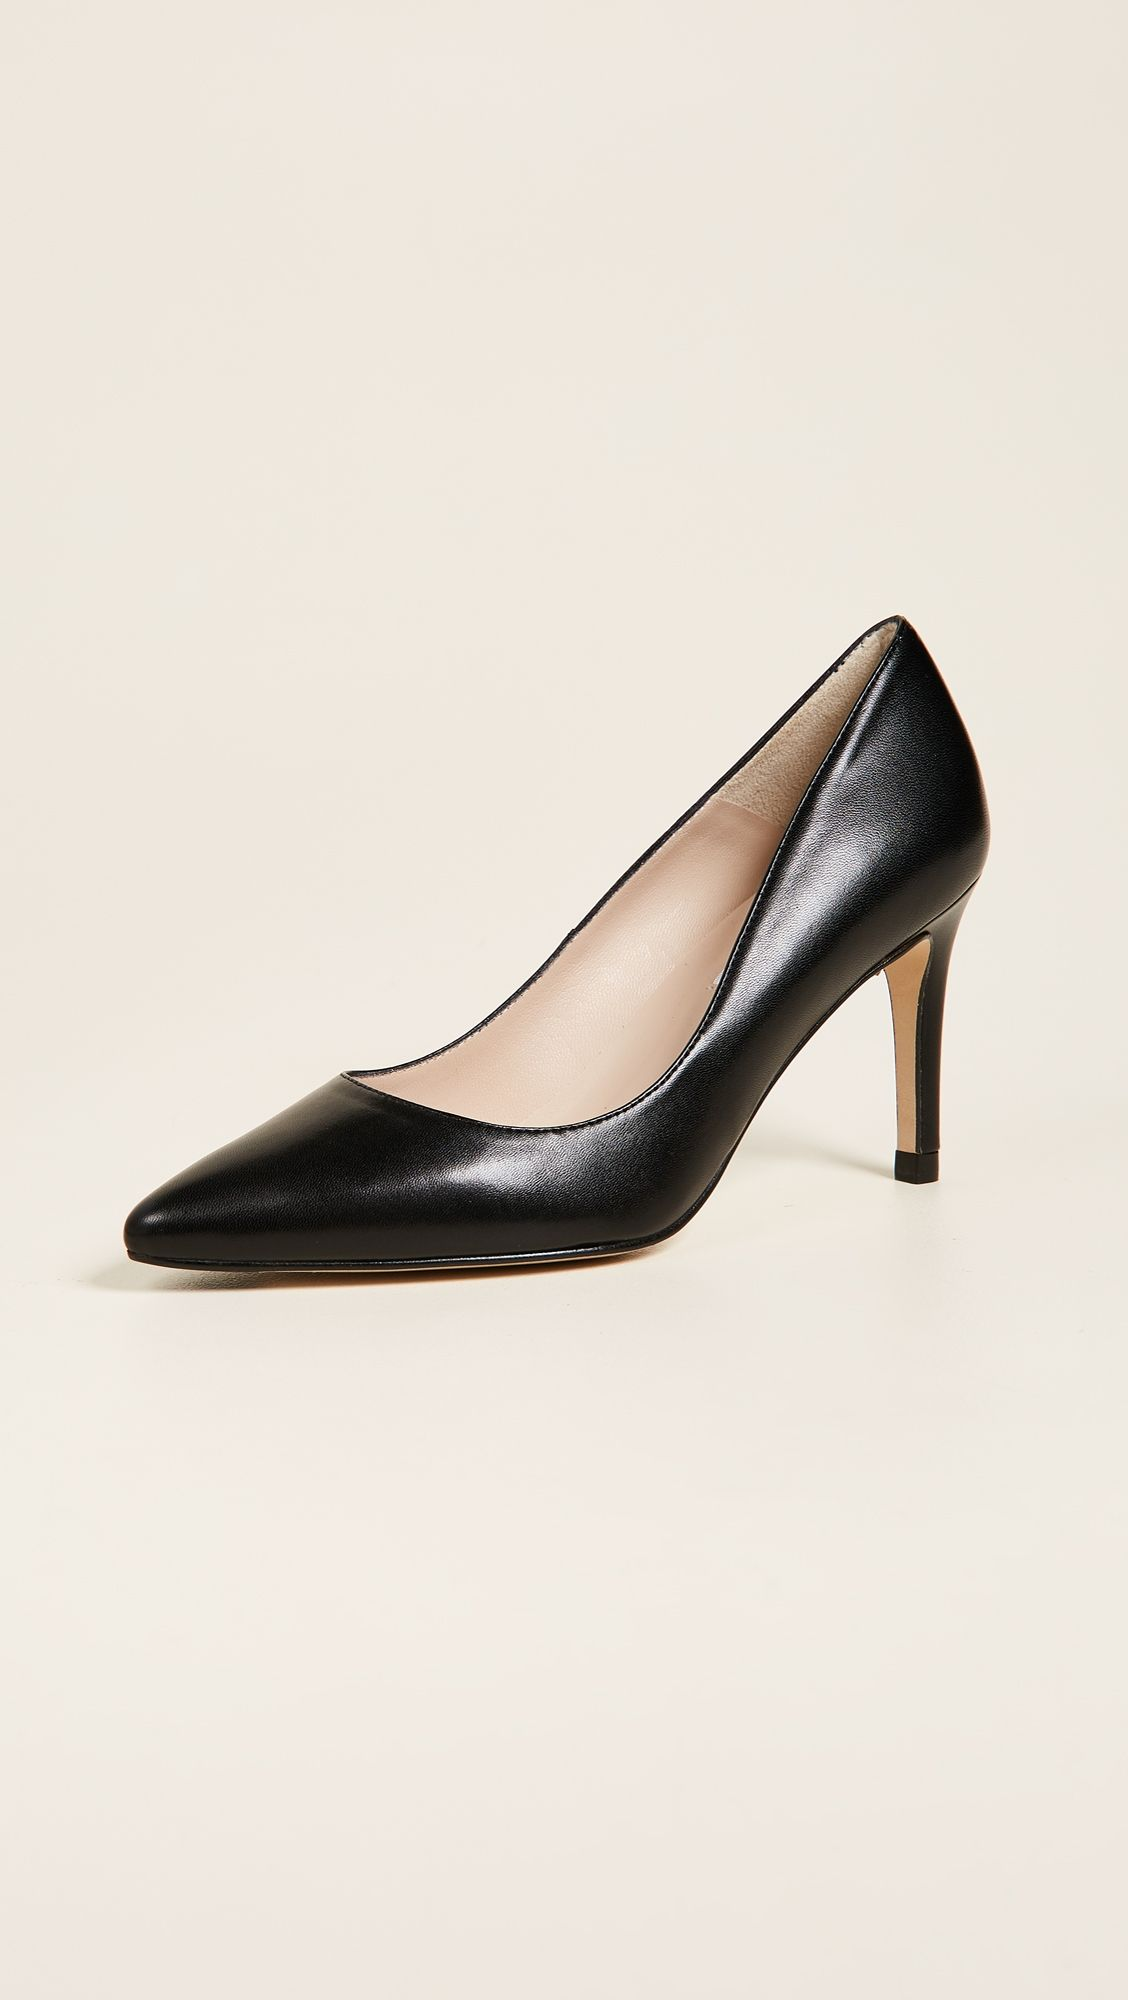 b6ca807838 L.K. Bennett Floret Point Toe Pumps in 2019 | Products | Shoes ...